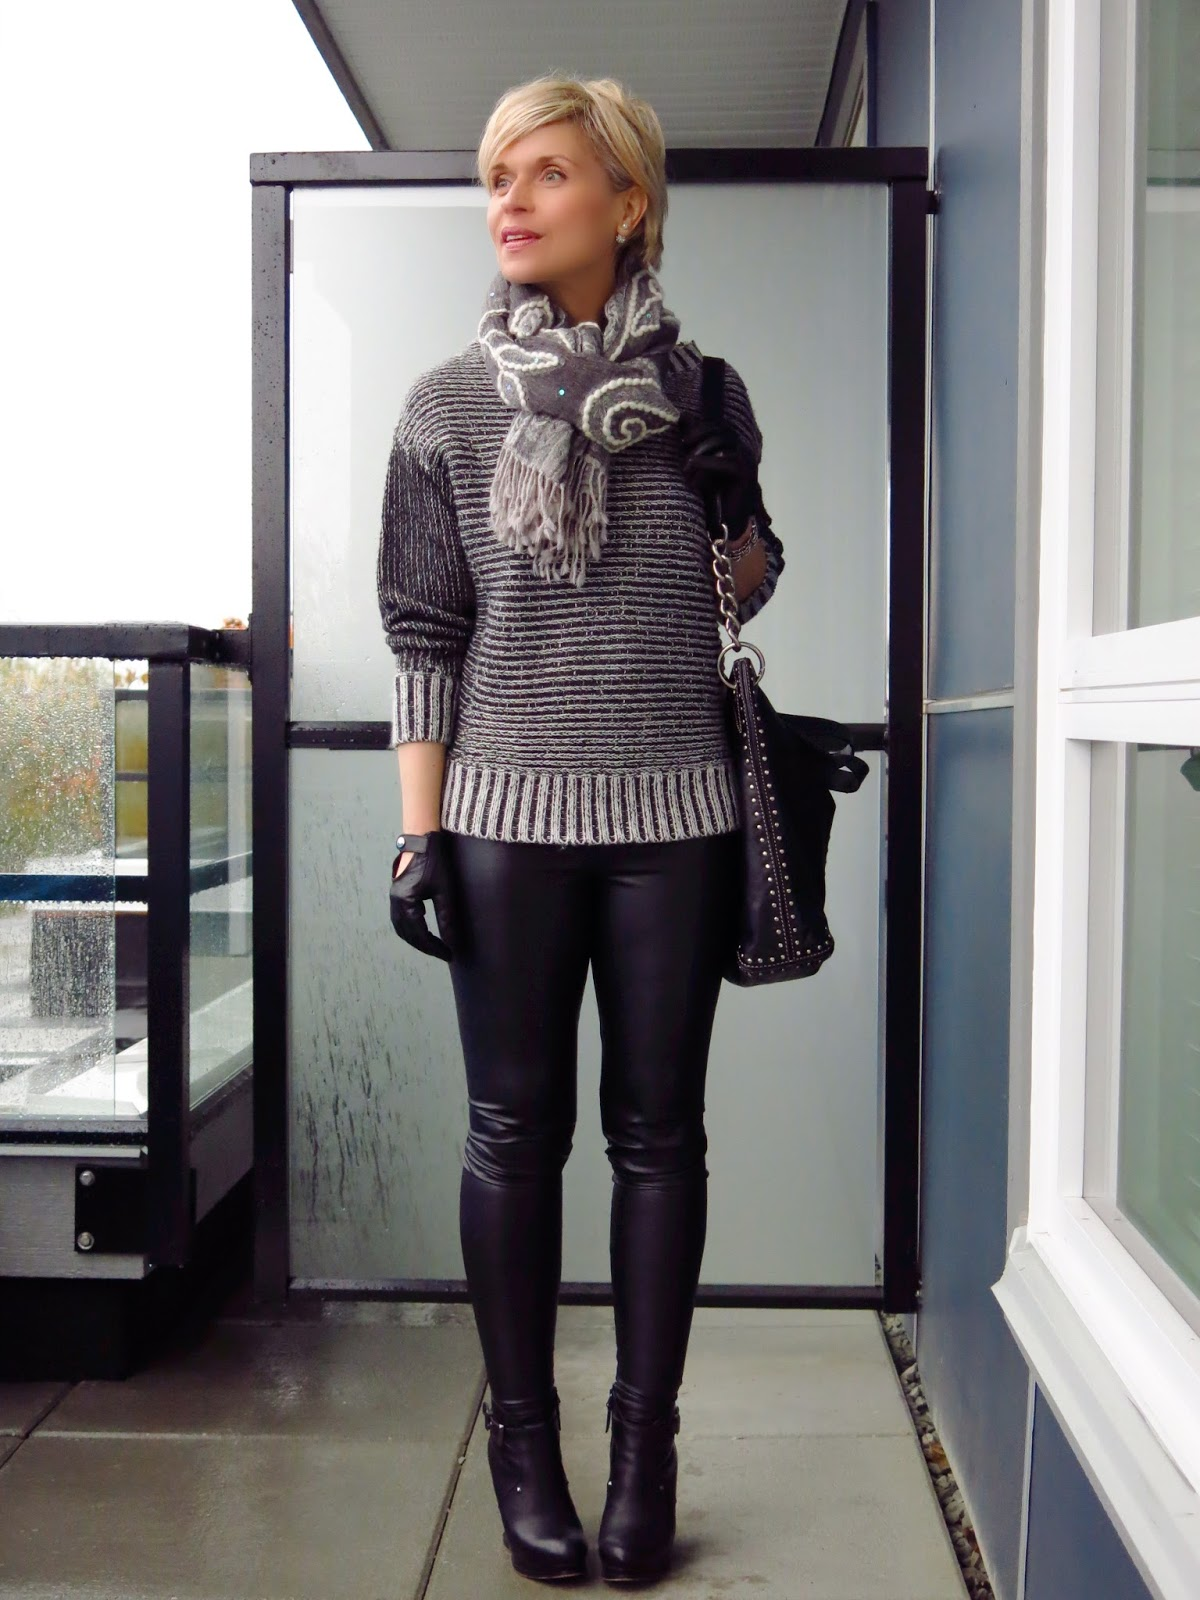 styling faux-leather leggings with a chunky sweater, embroidered scarf, gloves, and wedge booties